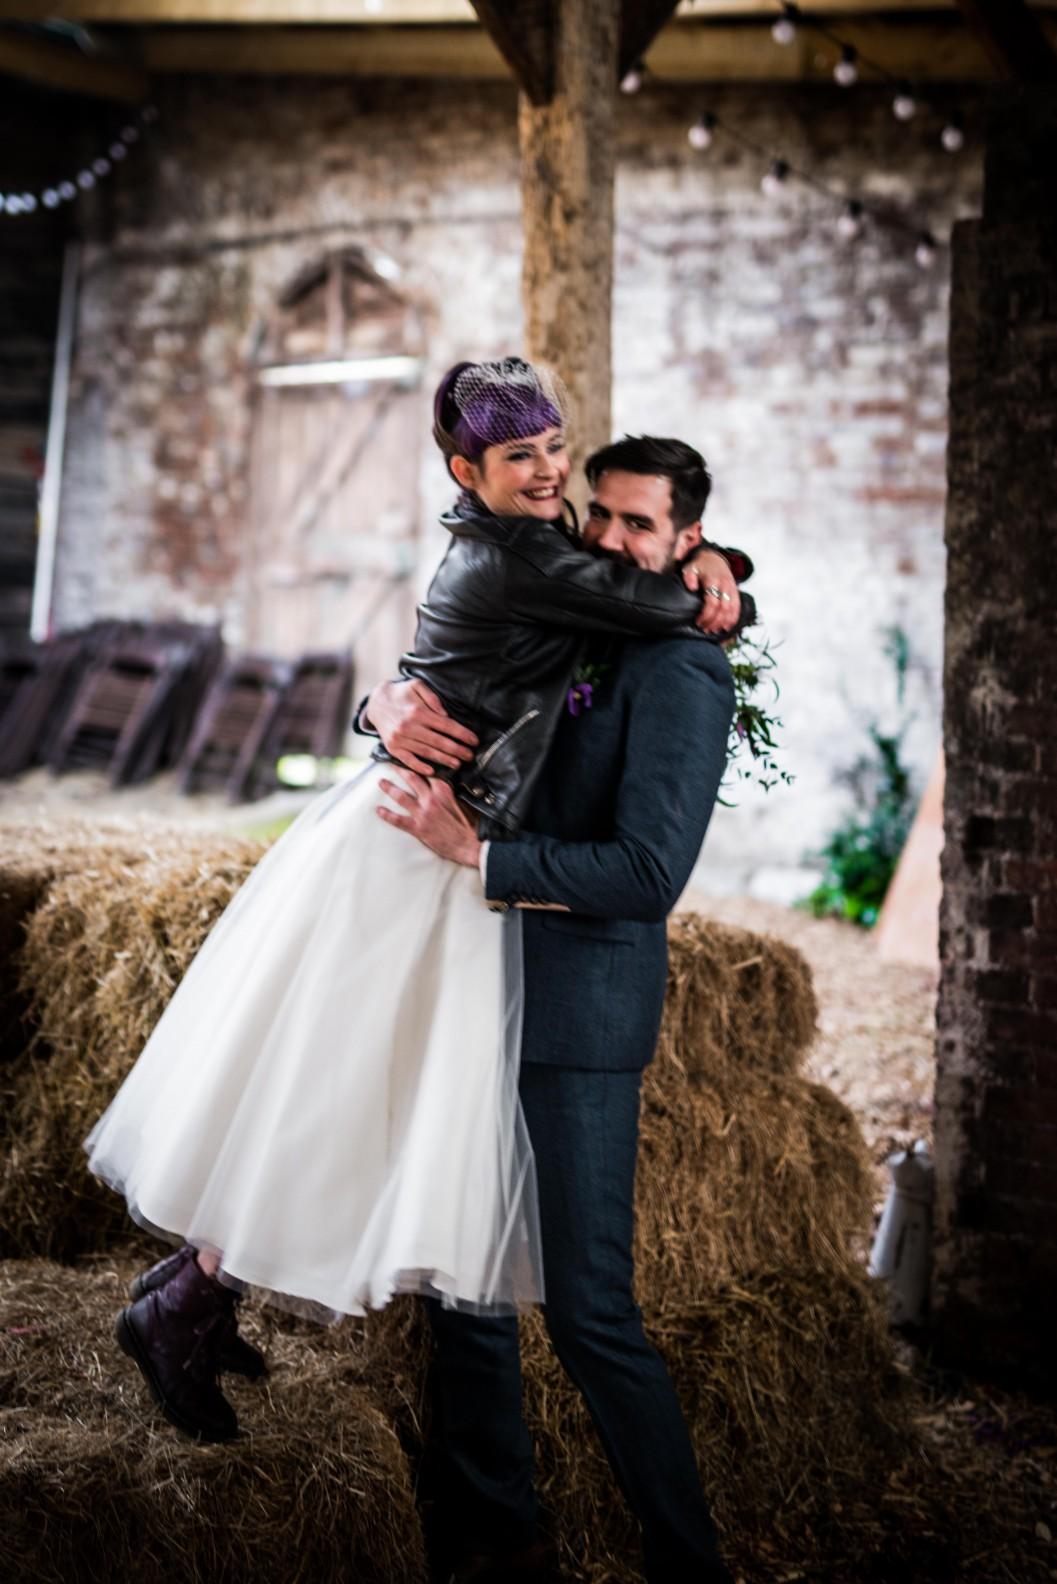 Peacock barns - alternative unconventional wedding photoshoot - rustic decadent - wedding couple